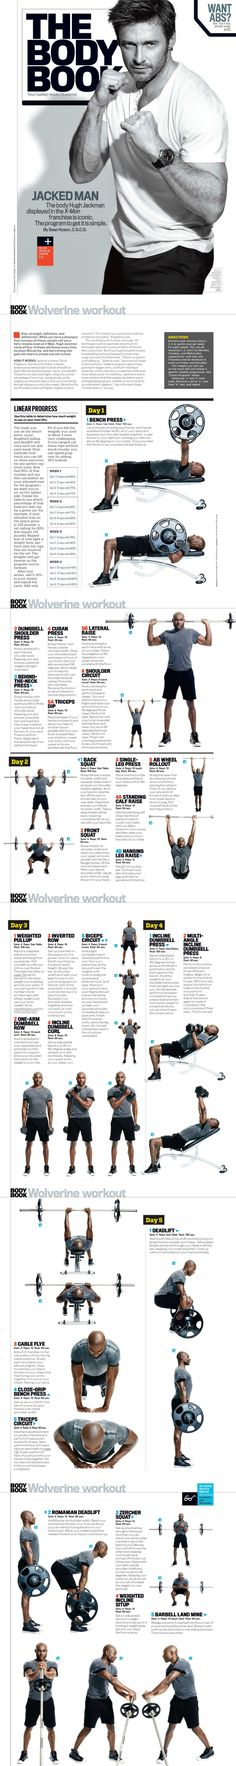 The Wolverine Workout. [see more >> www.pinterest.com/amorefitness]